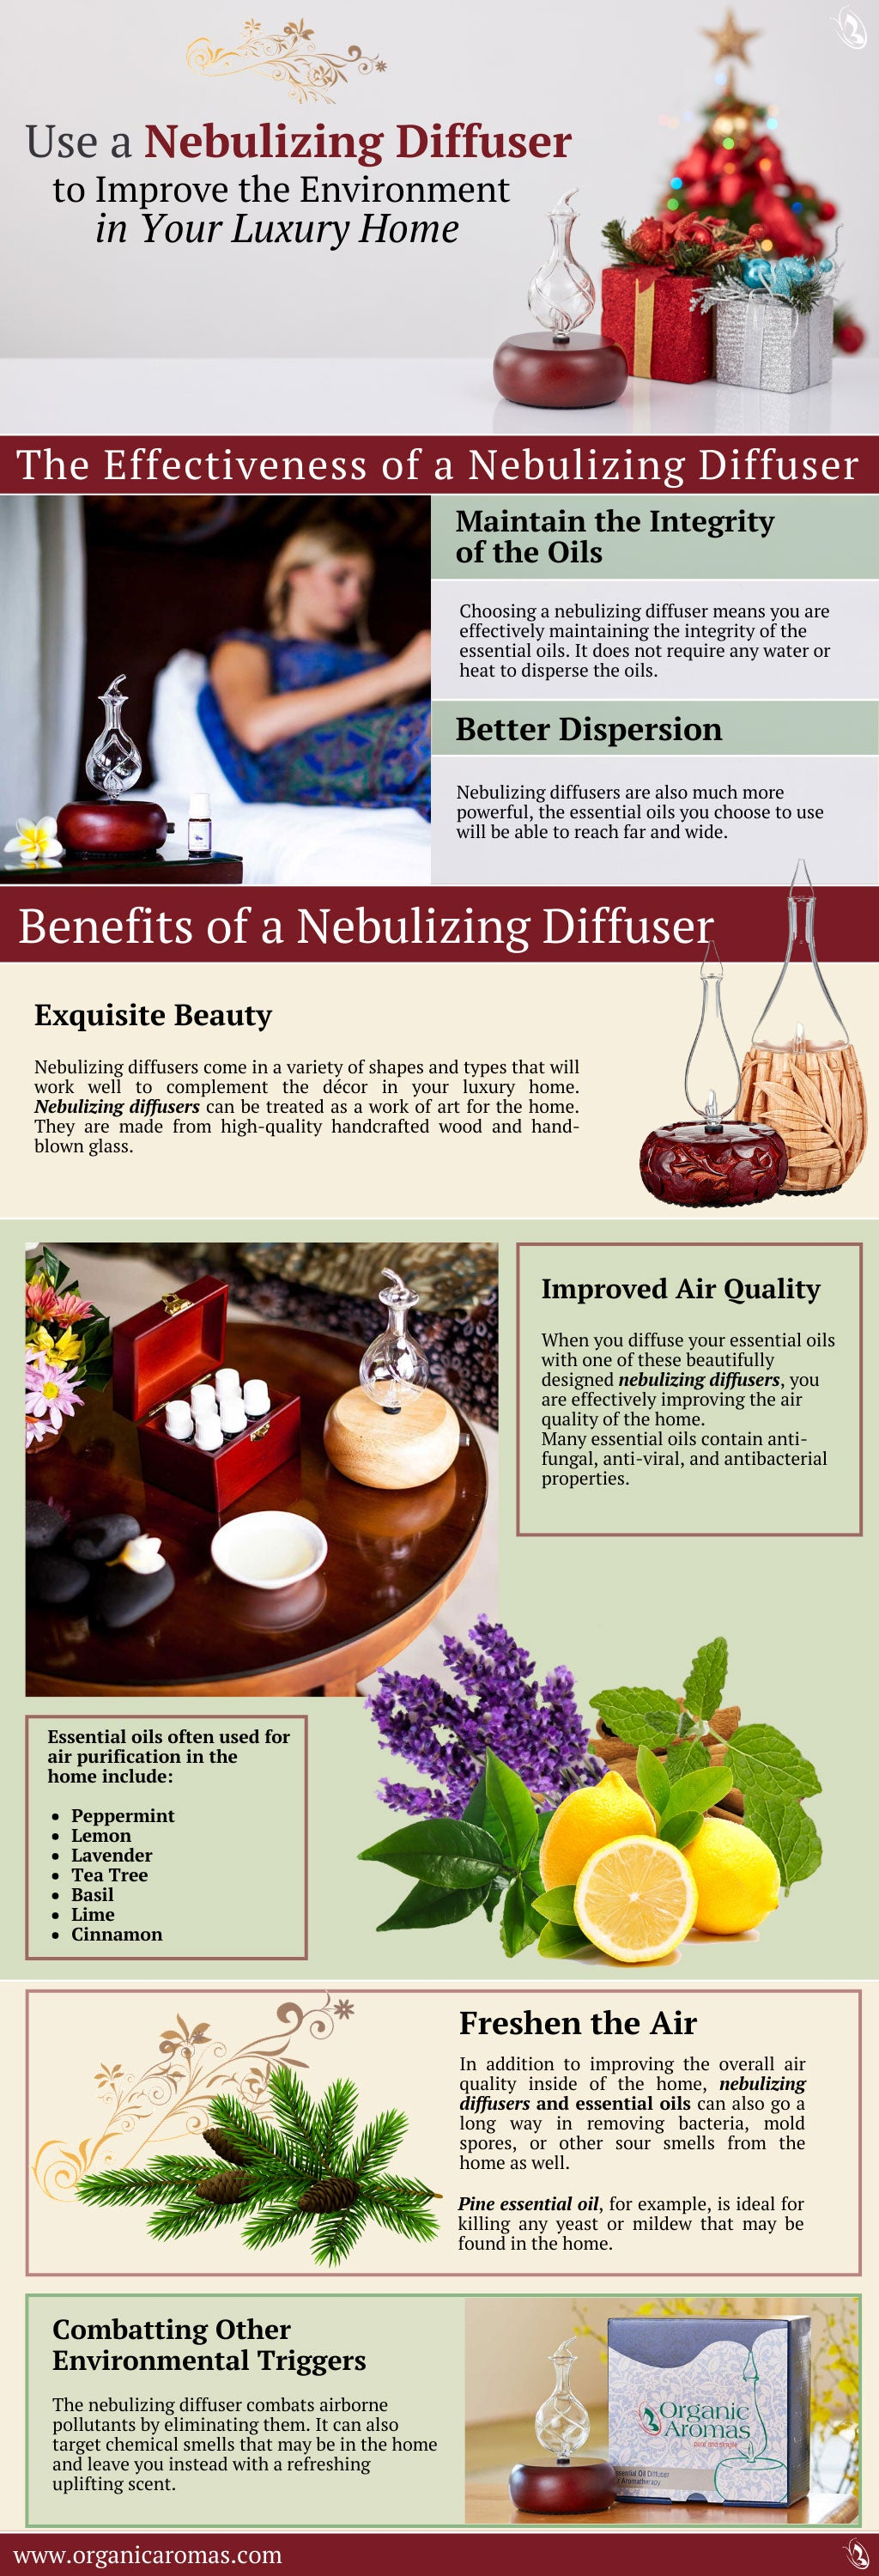 Use a Nebulizing Diffuser to Improve the Environment in Your Luxury Home